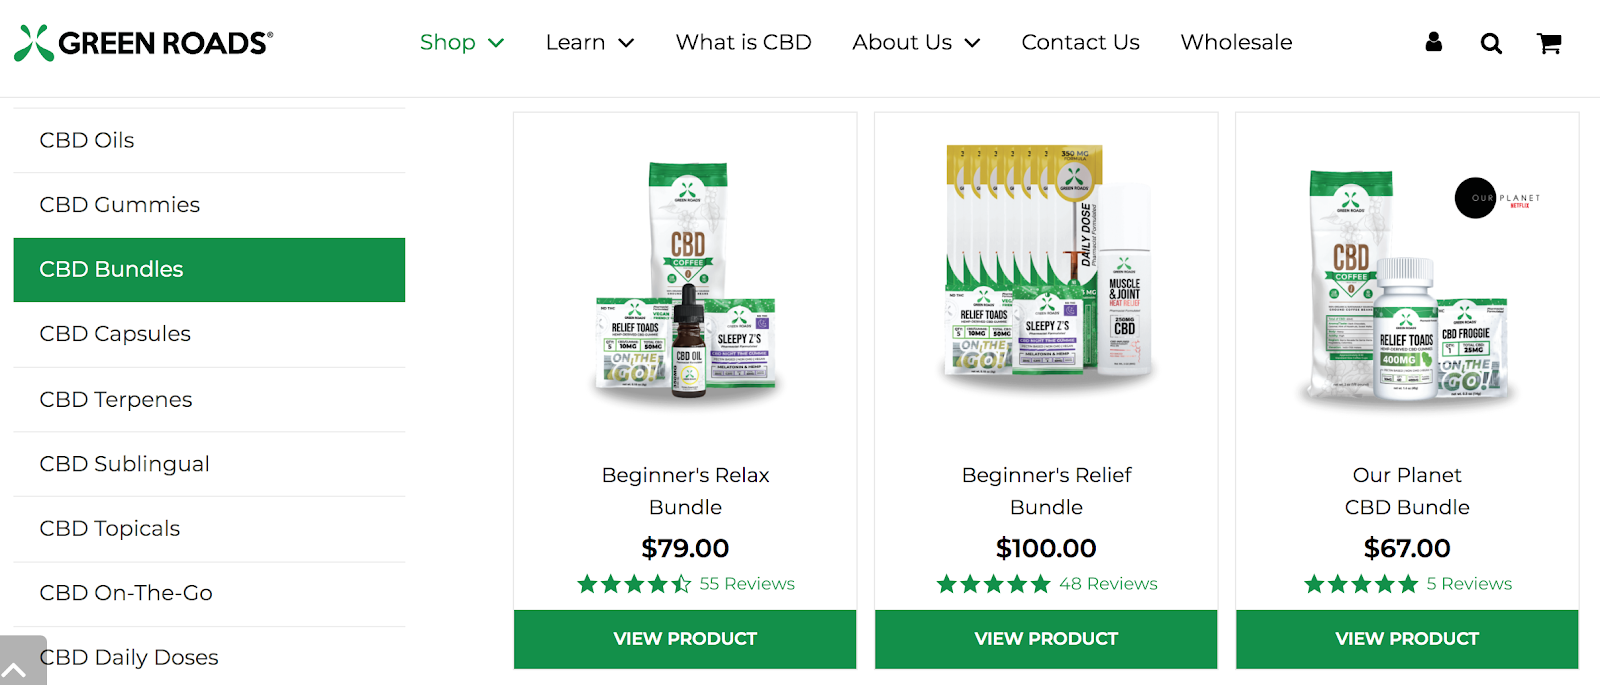 green roads cbd bundle deals